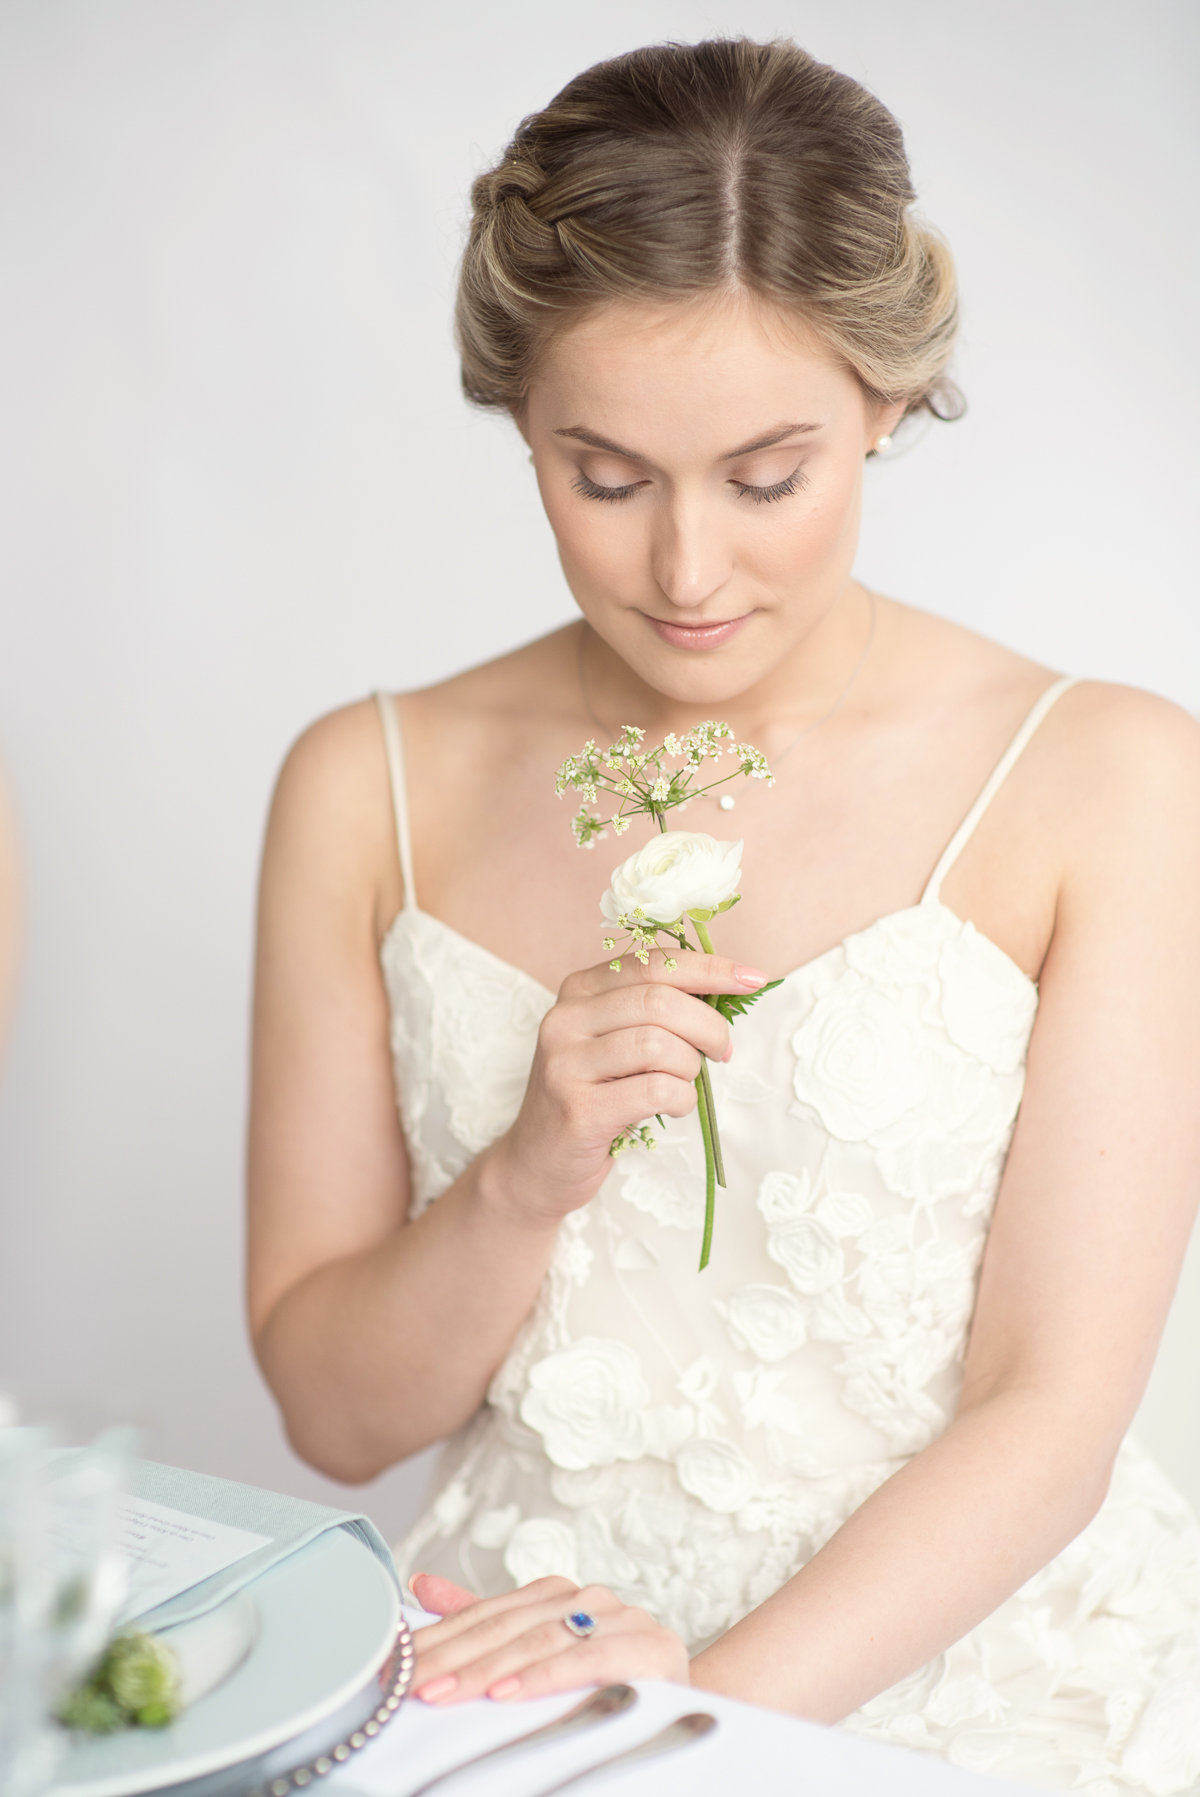 Ballet bridal editorial_Eva Tarnok Photography_64.jpg